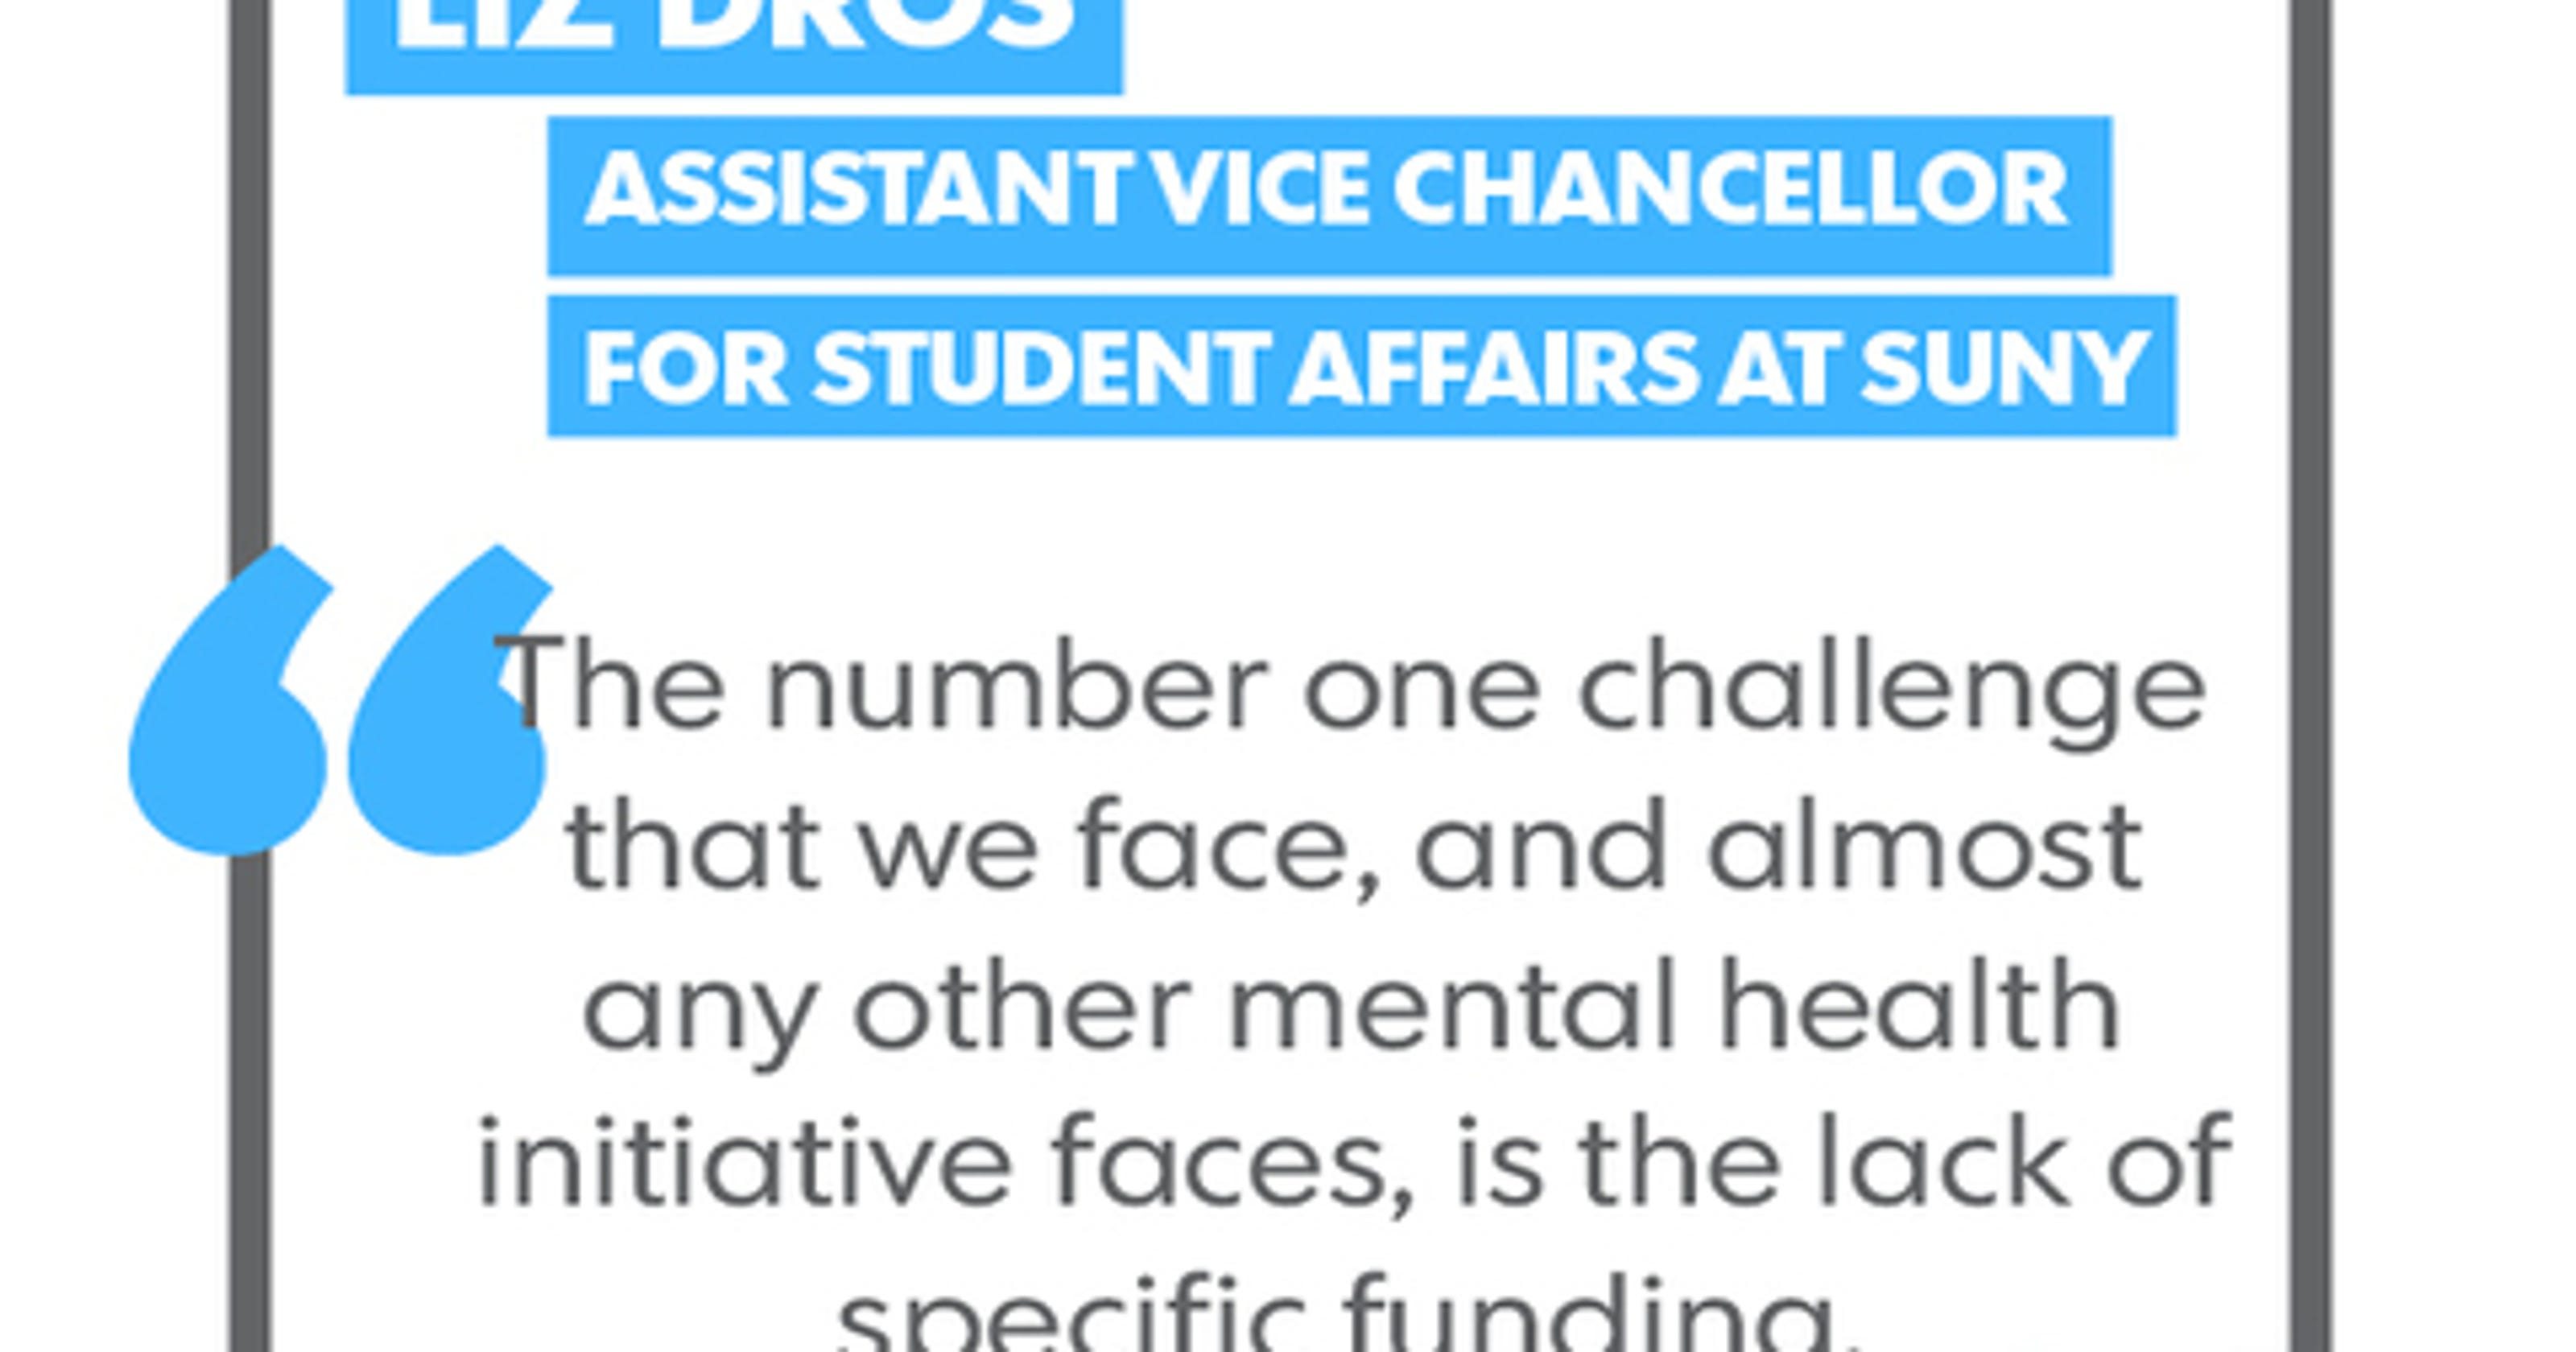 Student Vouchers Arent Working Heres Why >> More And More Students Need Mental Health Services But Colleges